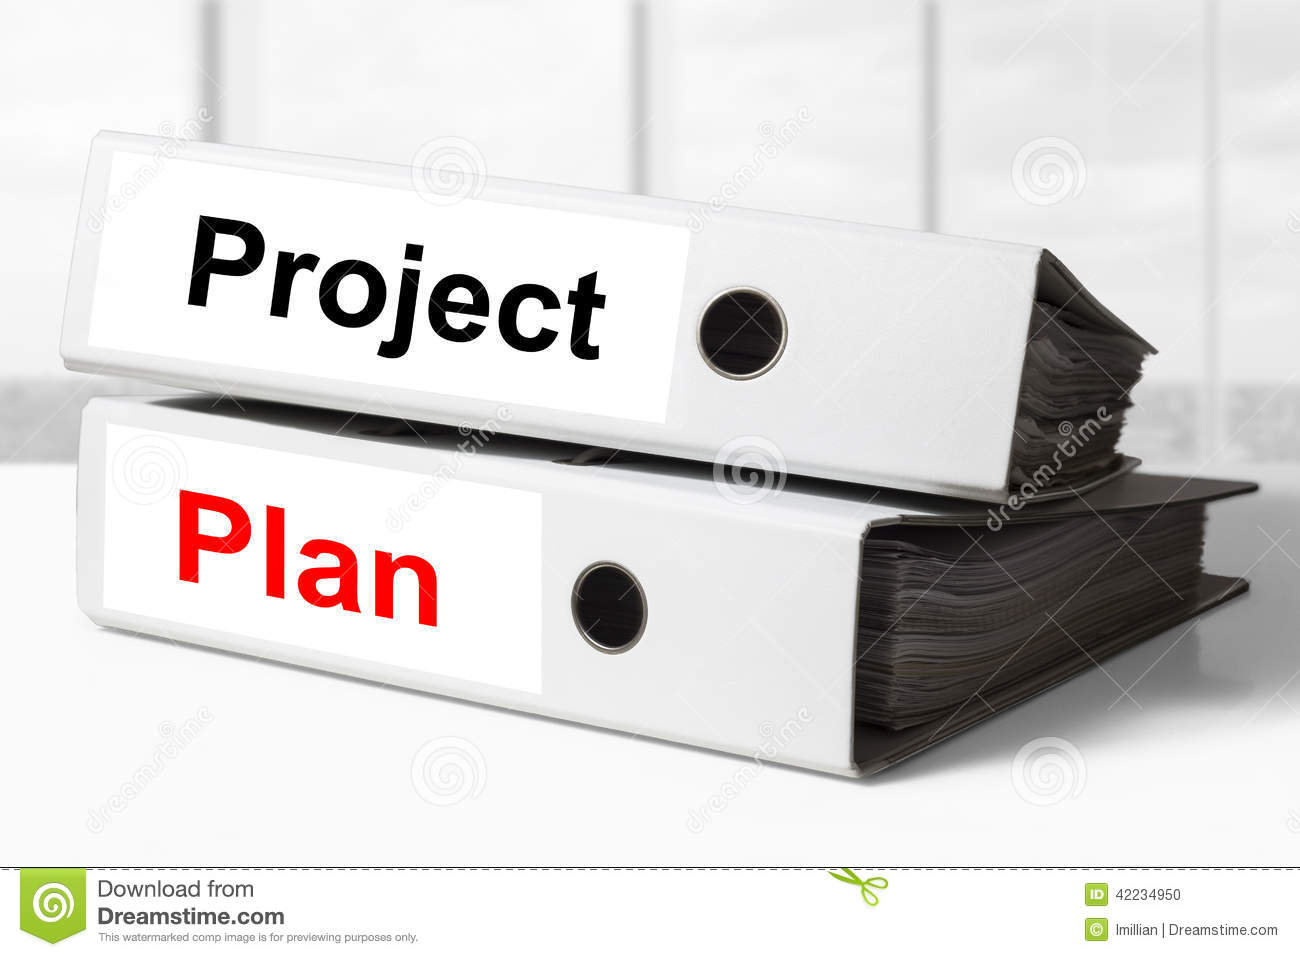 projectplan Project Plan Office Binders Stock Photo   Image of finance